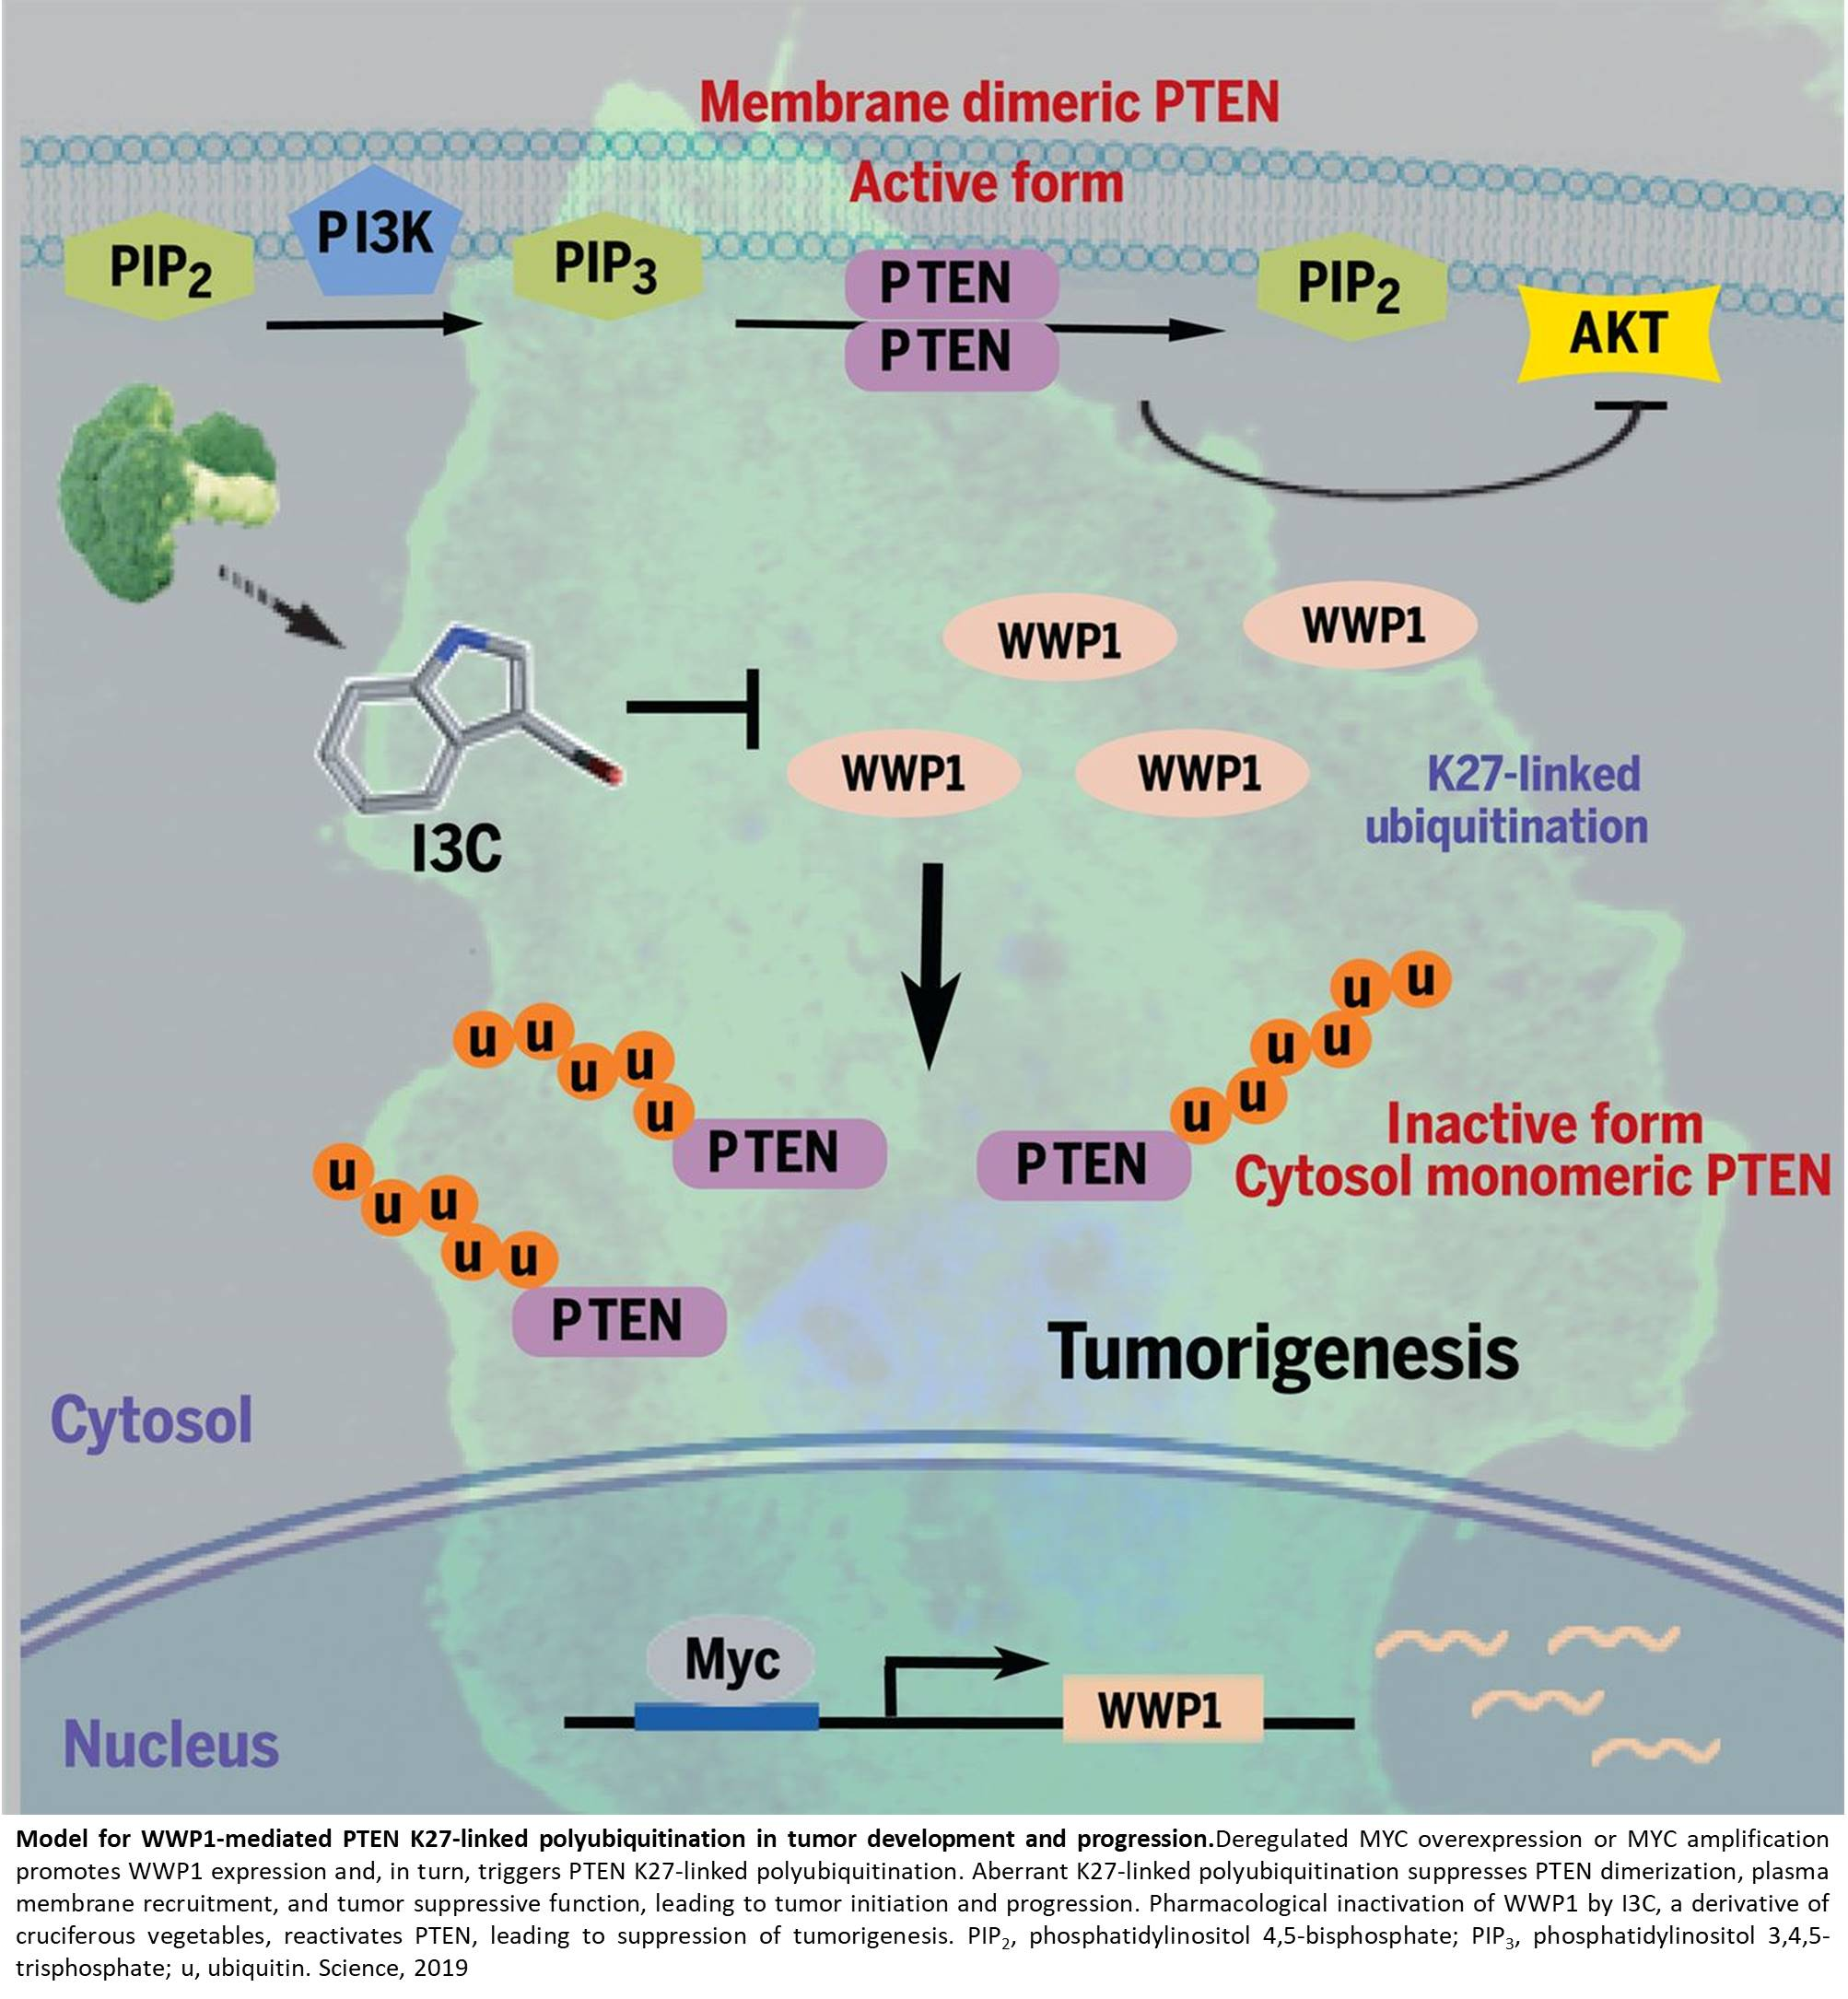 Broccoli compound prevents cancer growth by reactivating tumor suppressor